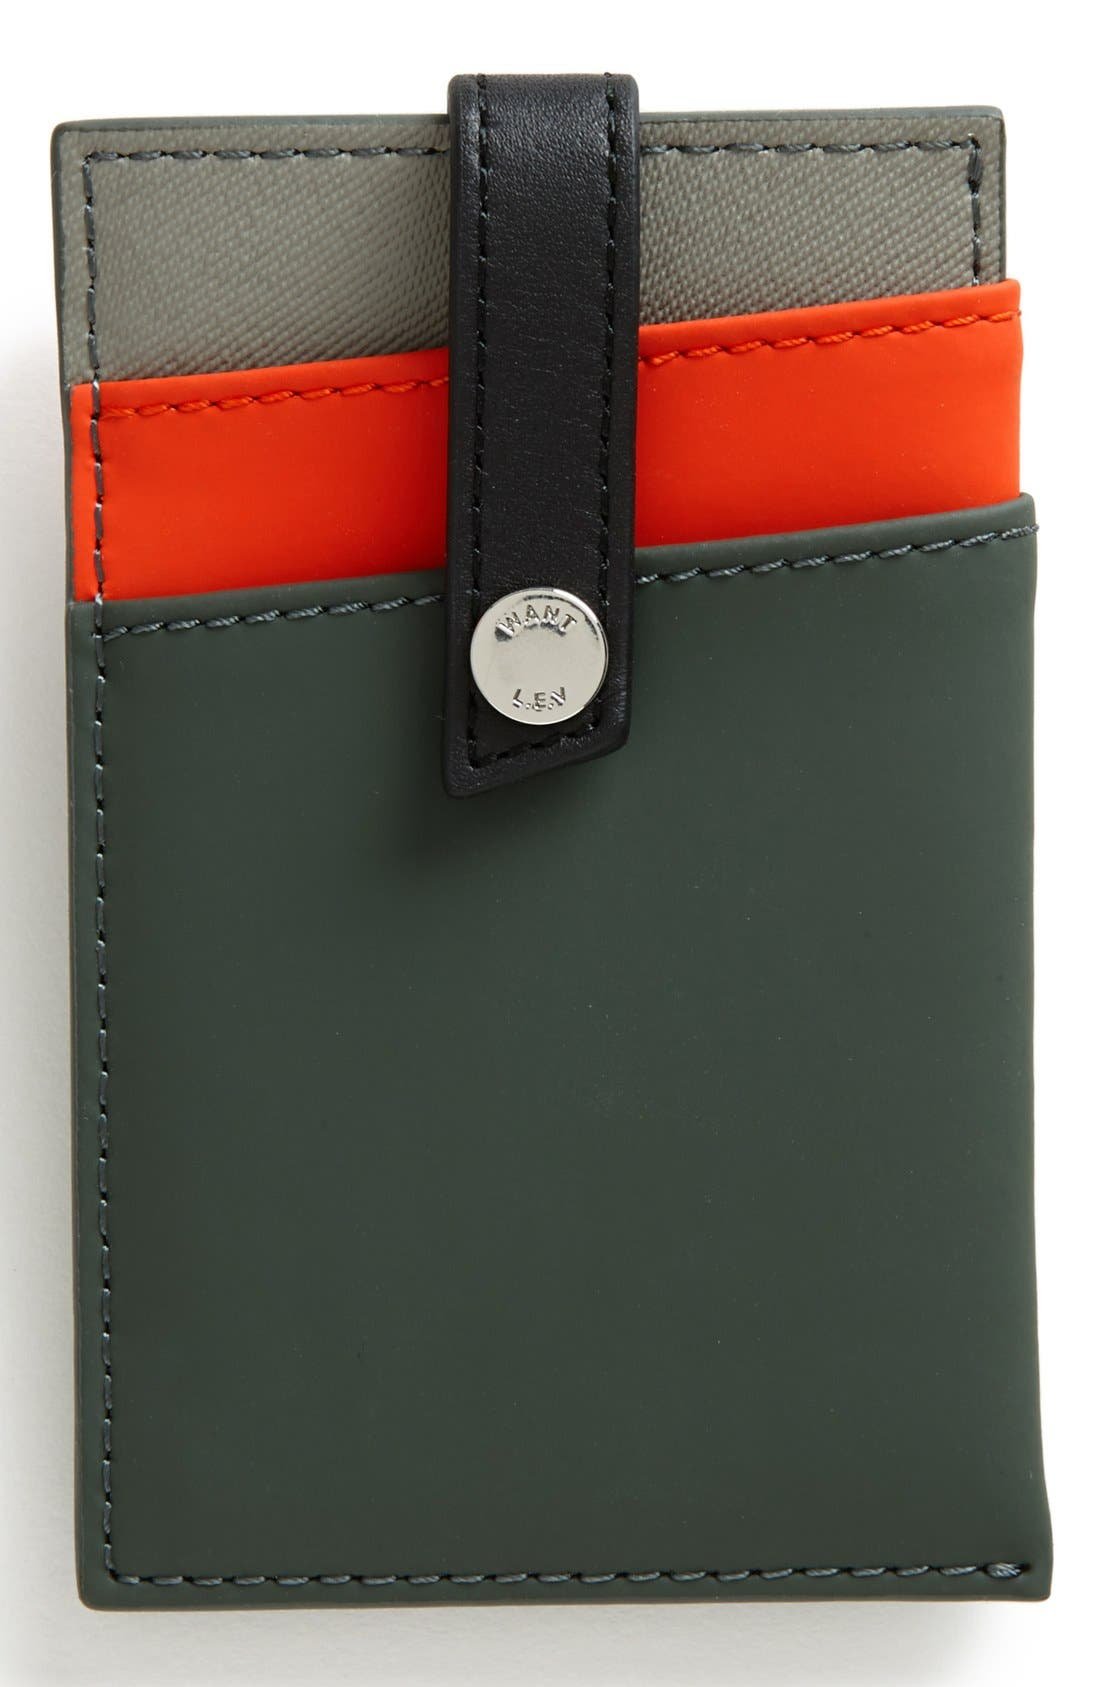 Alternate Image 1 Selected - WANT LES ESSENTIELS 'Kennedy' Money Clip Wallet